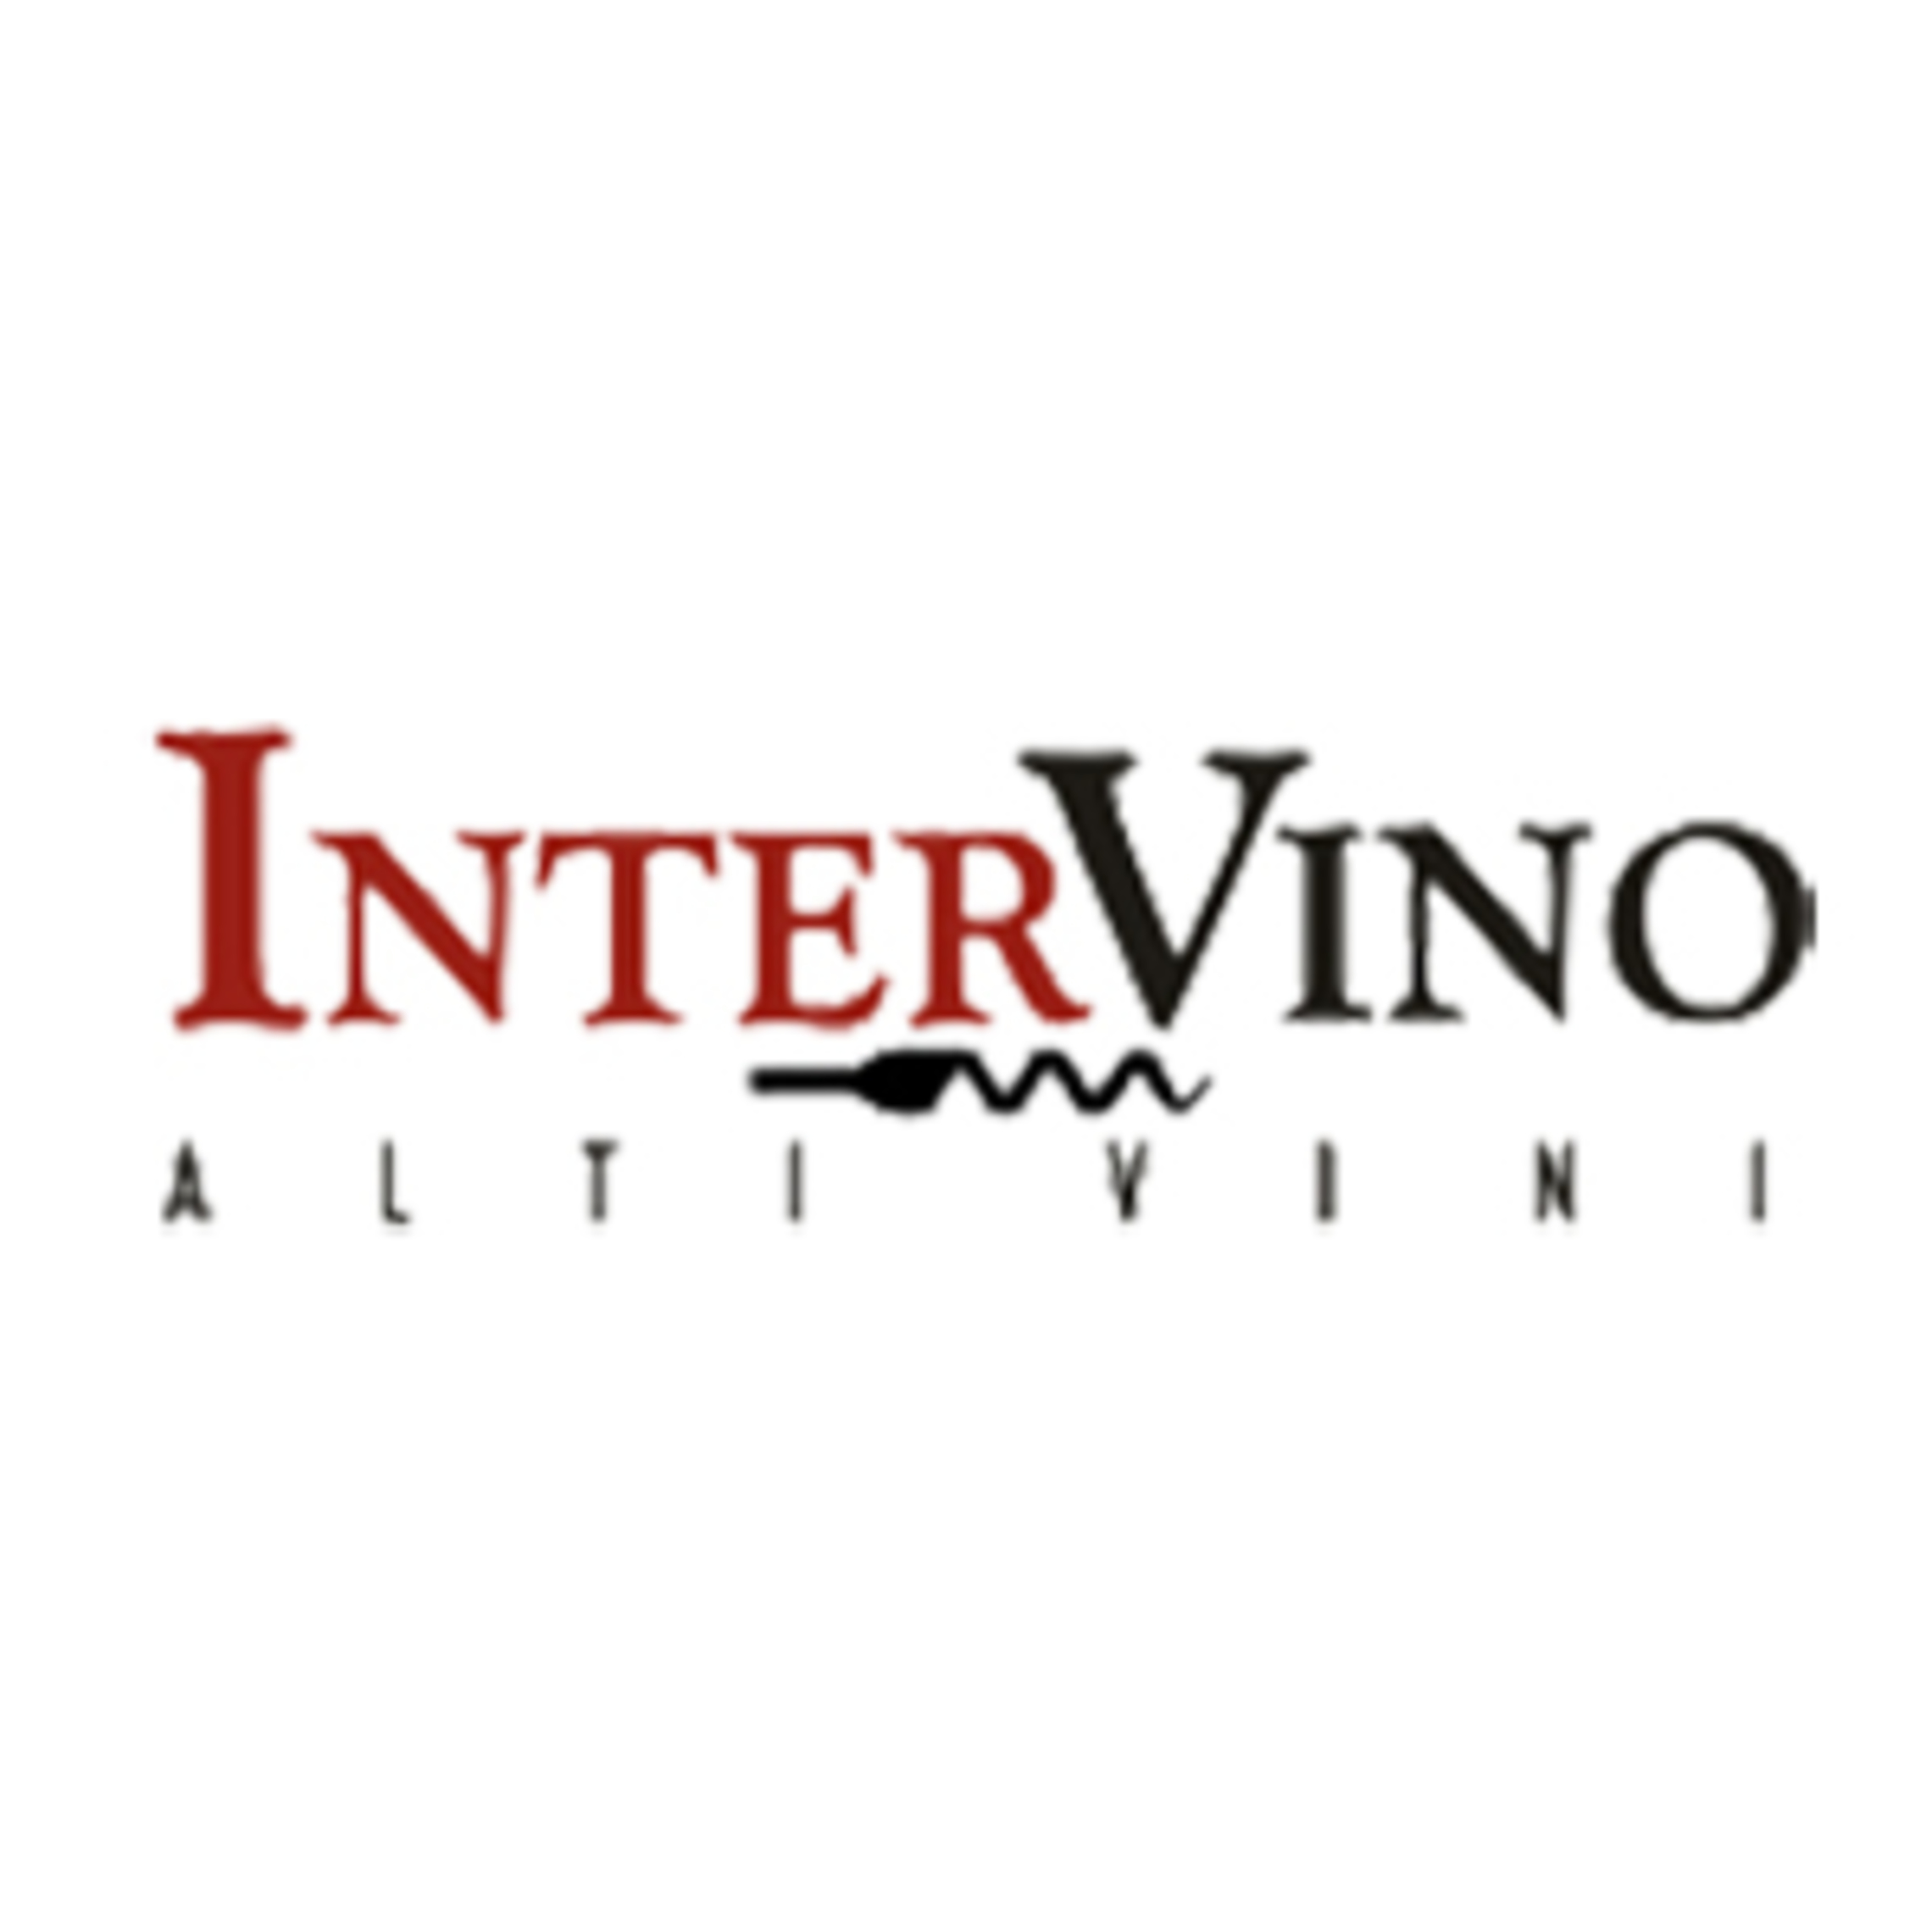 intervino- company logo